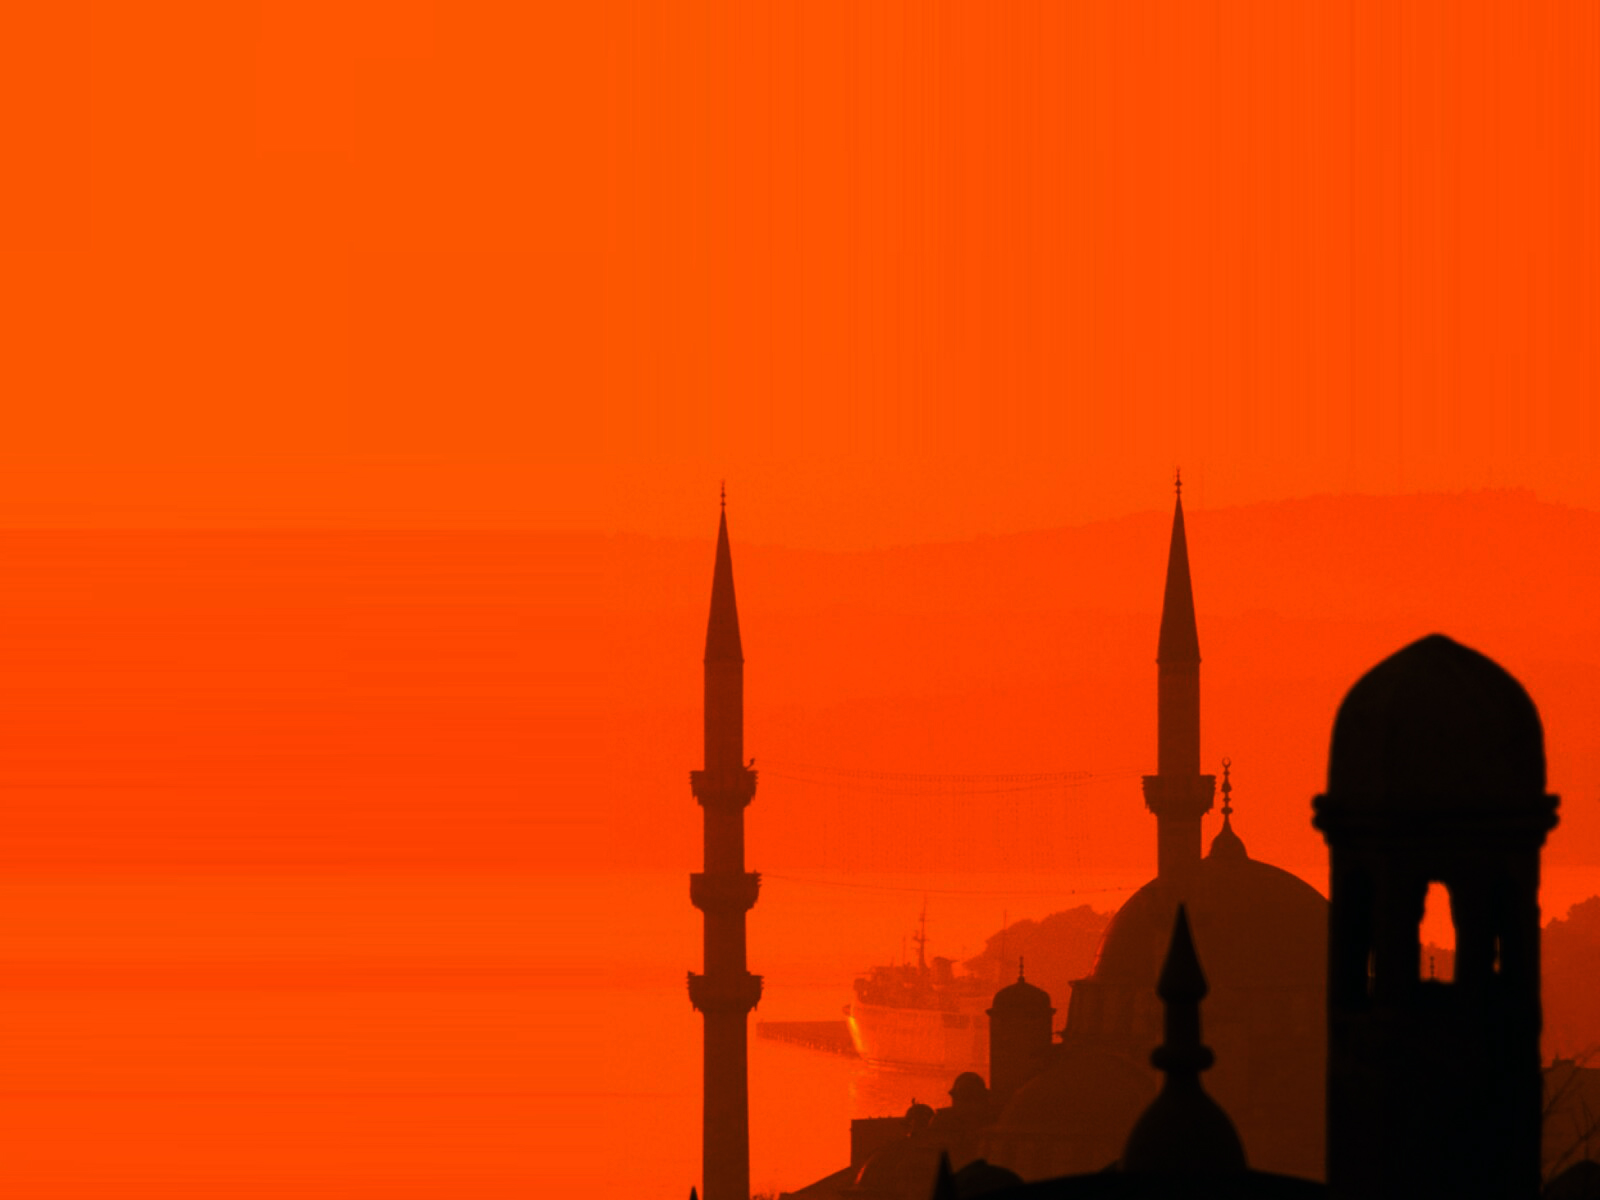 Islamic Mosque PPT Backgrounds